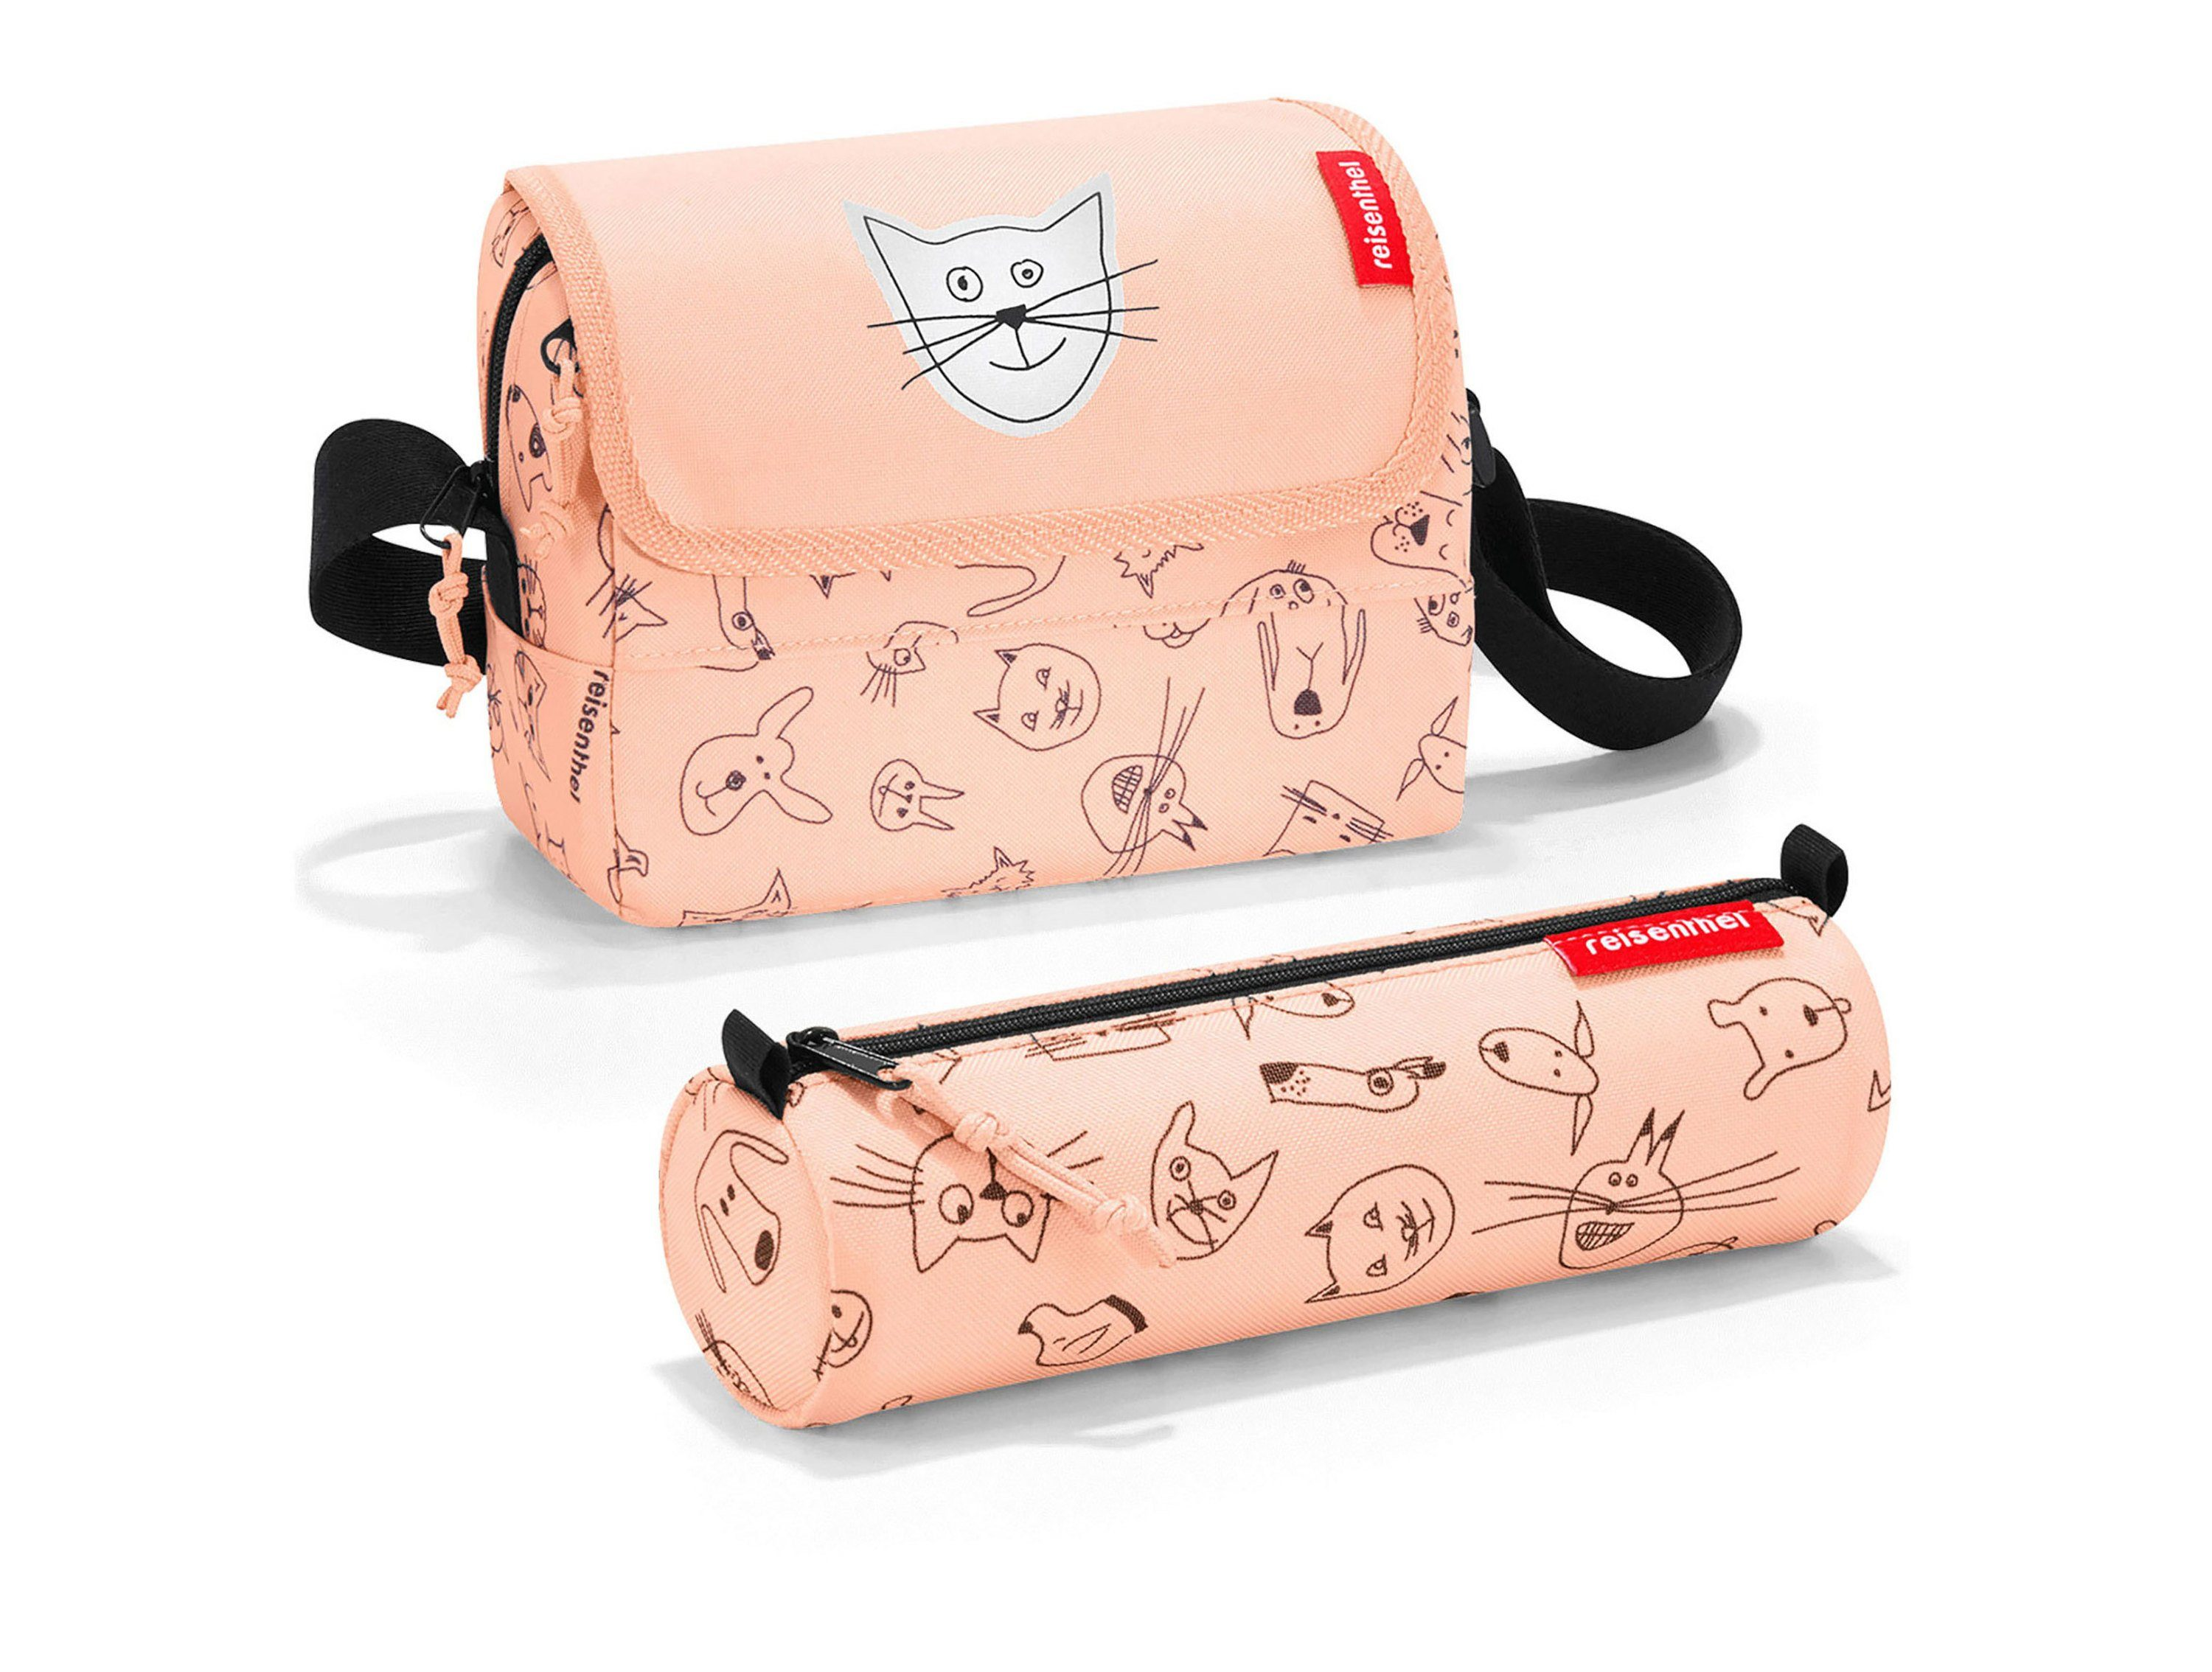 REISENTHEL® Kinder-Tasche mit Federmappe »Surprise cats and dogs«